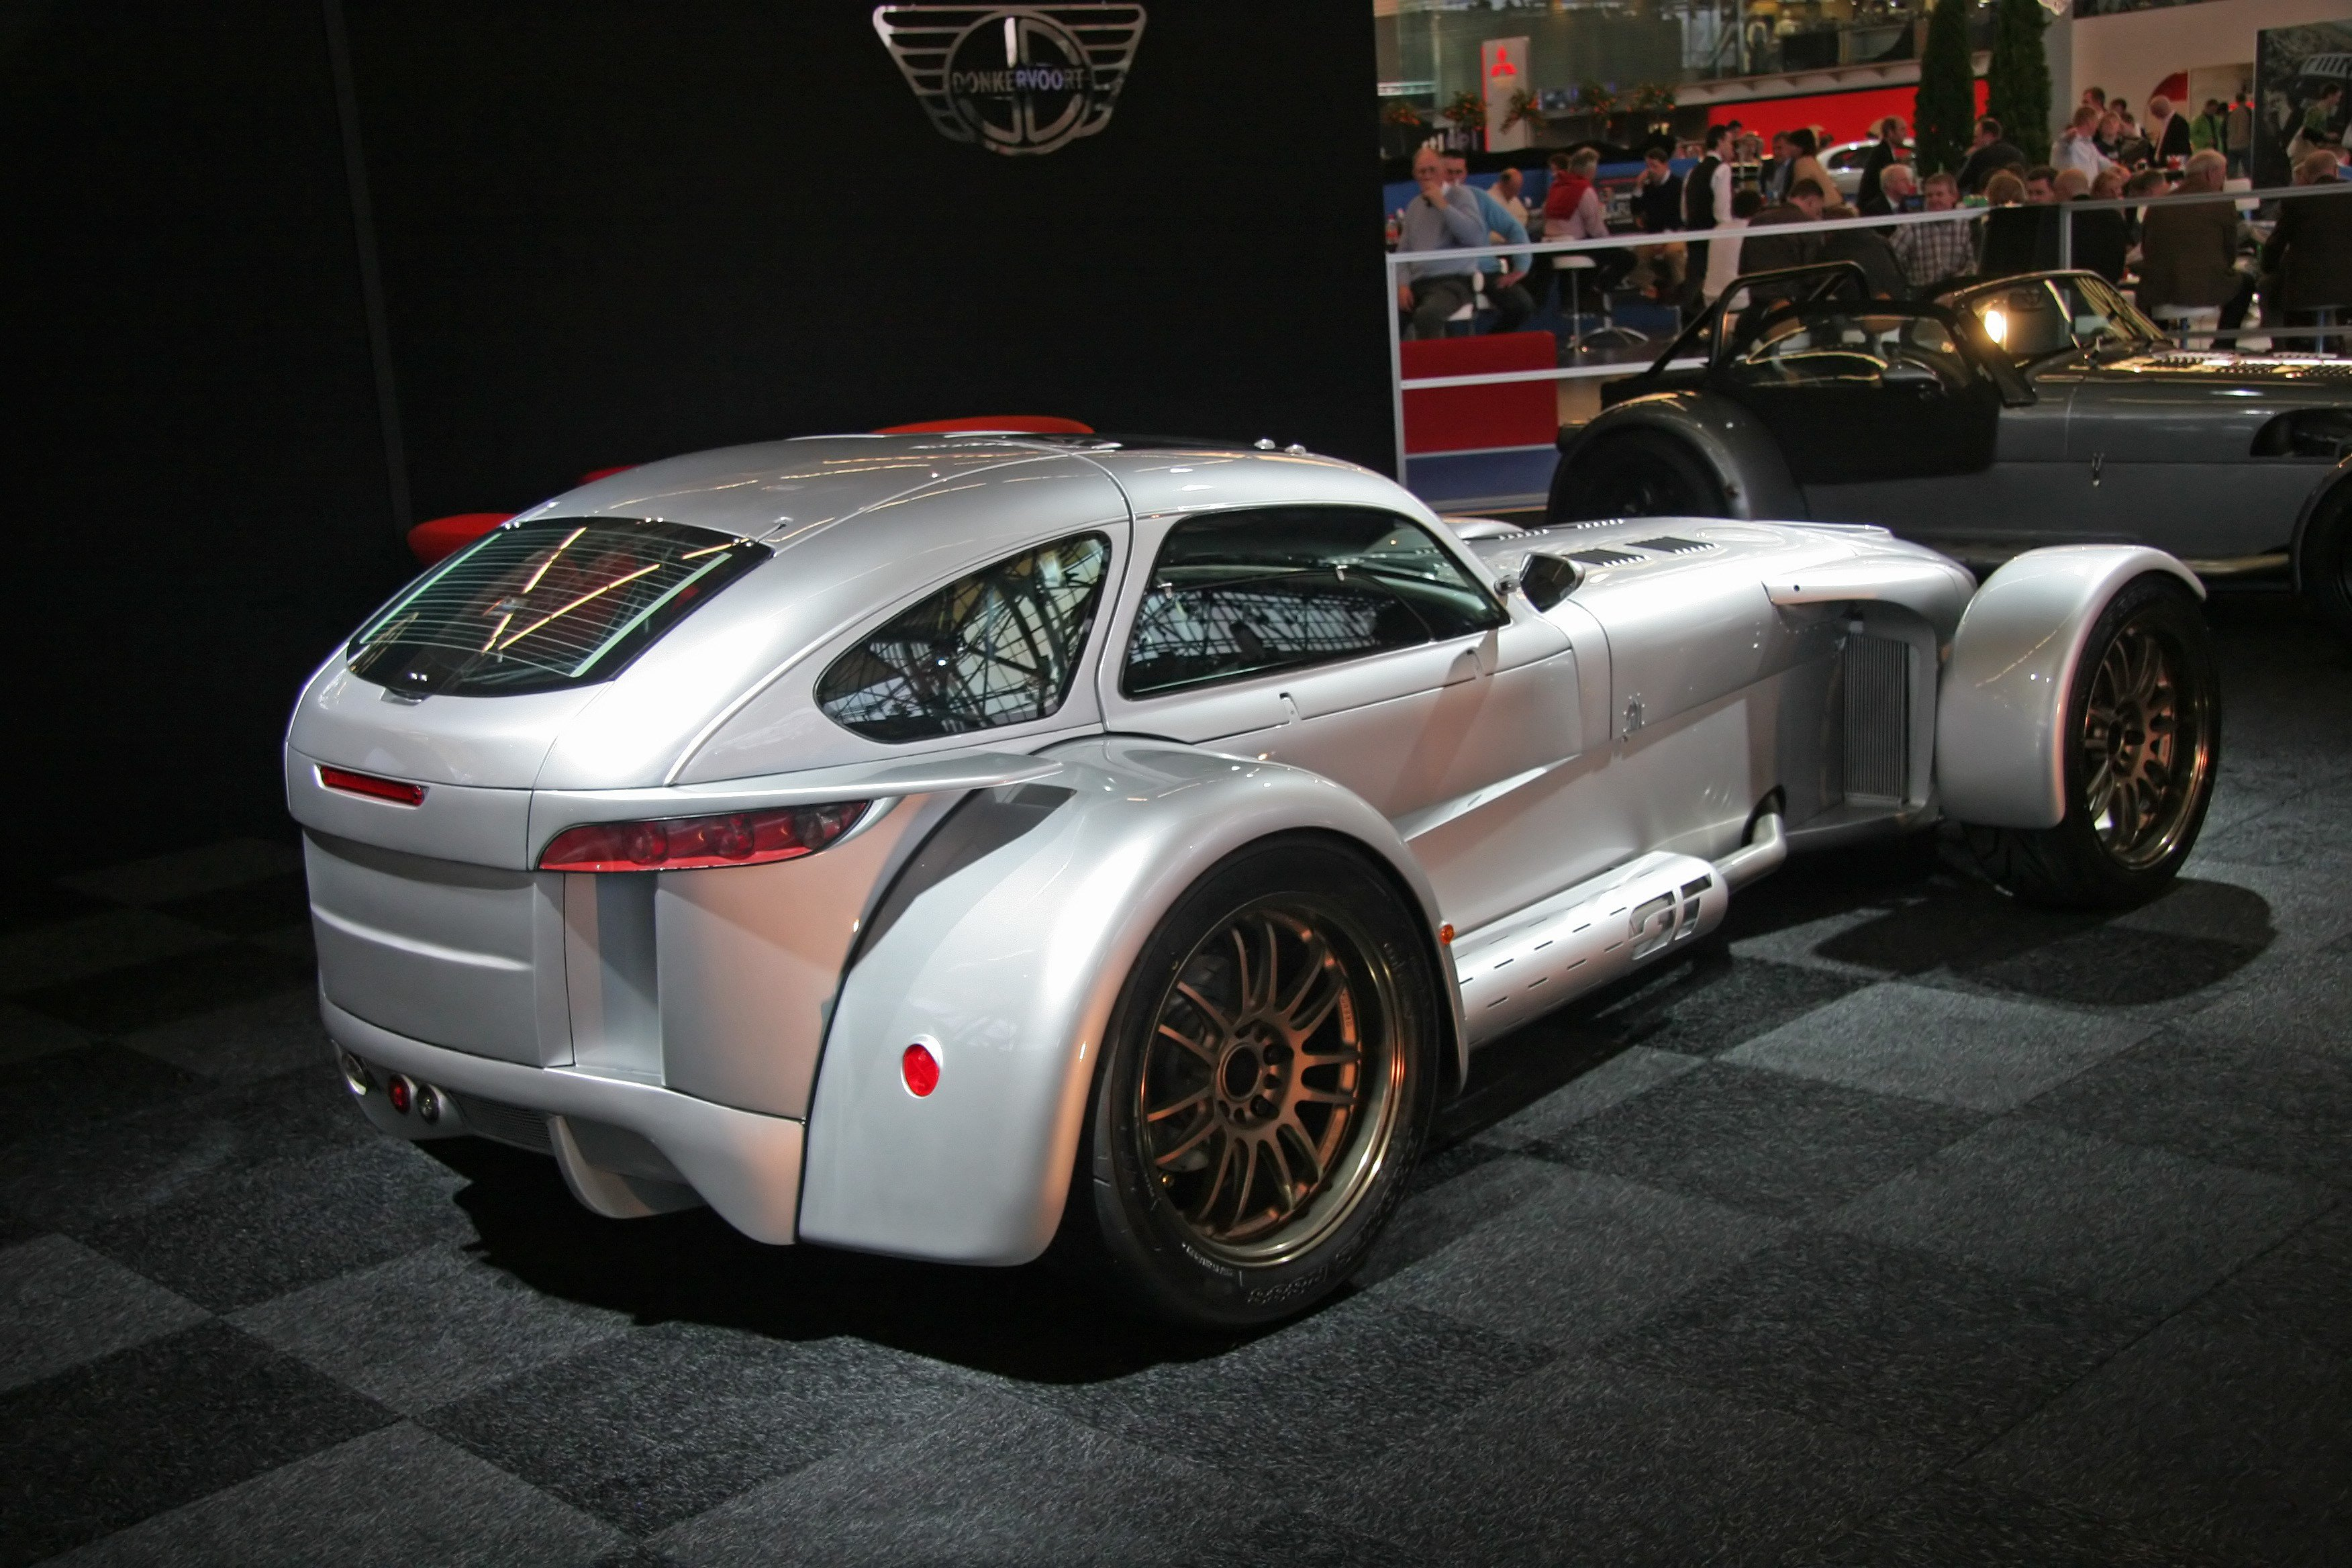 New Topworldauto Photos Of Donkervoort D8 Gt Photo Galleries On This Month